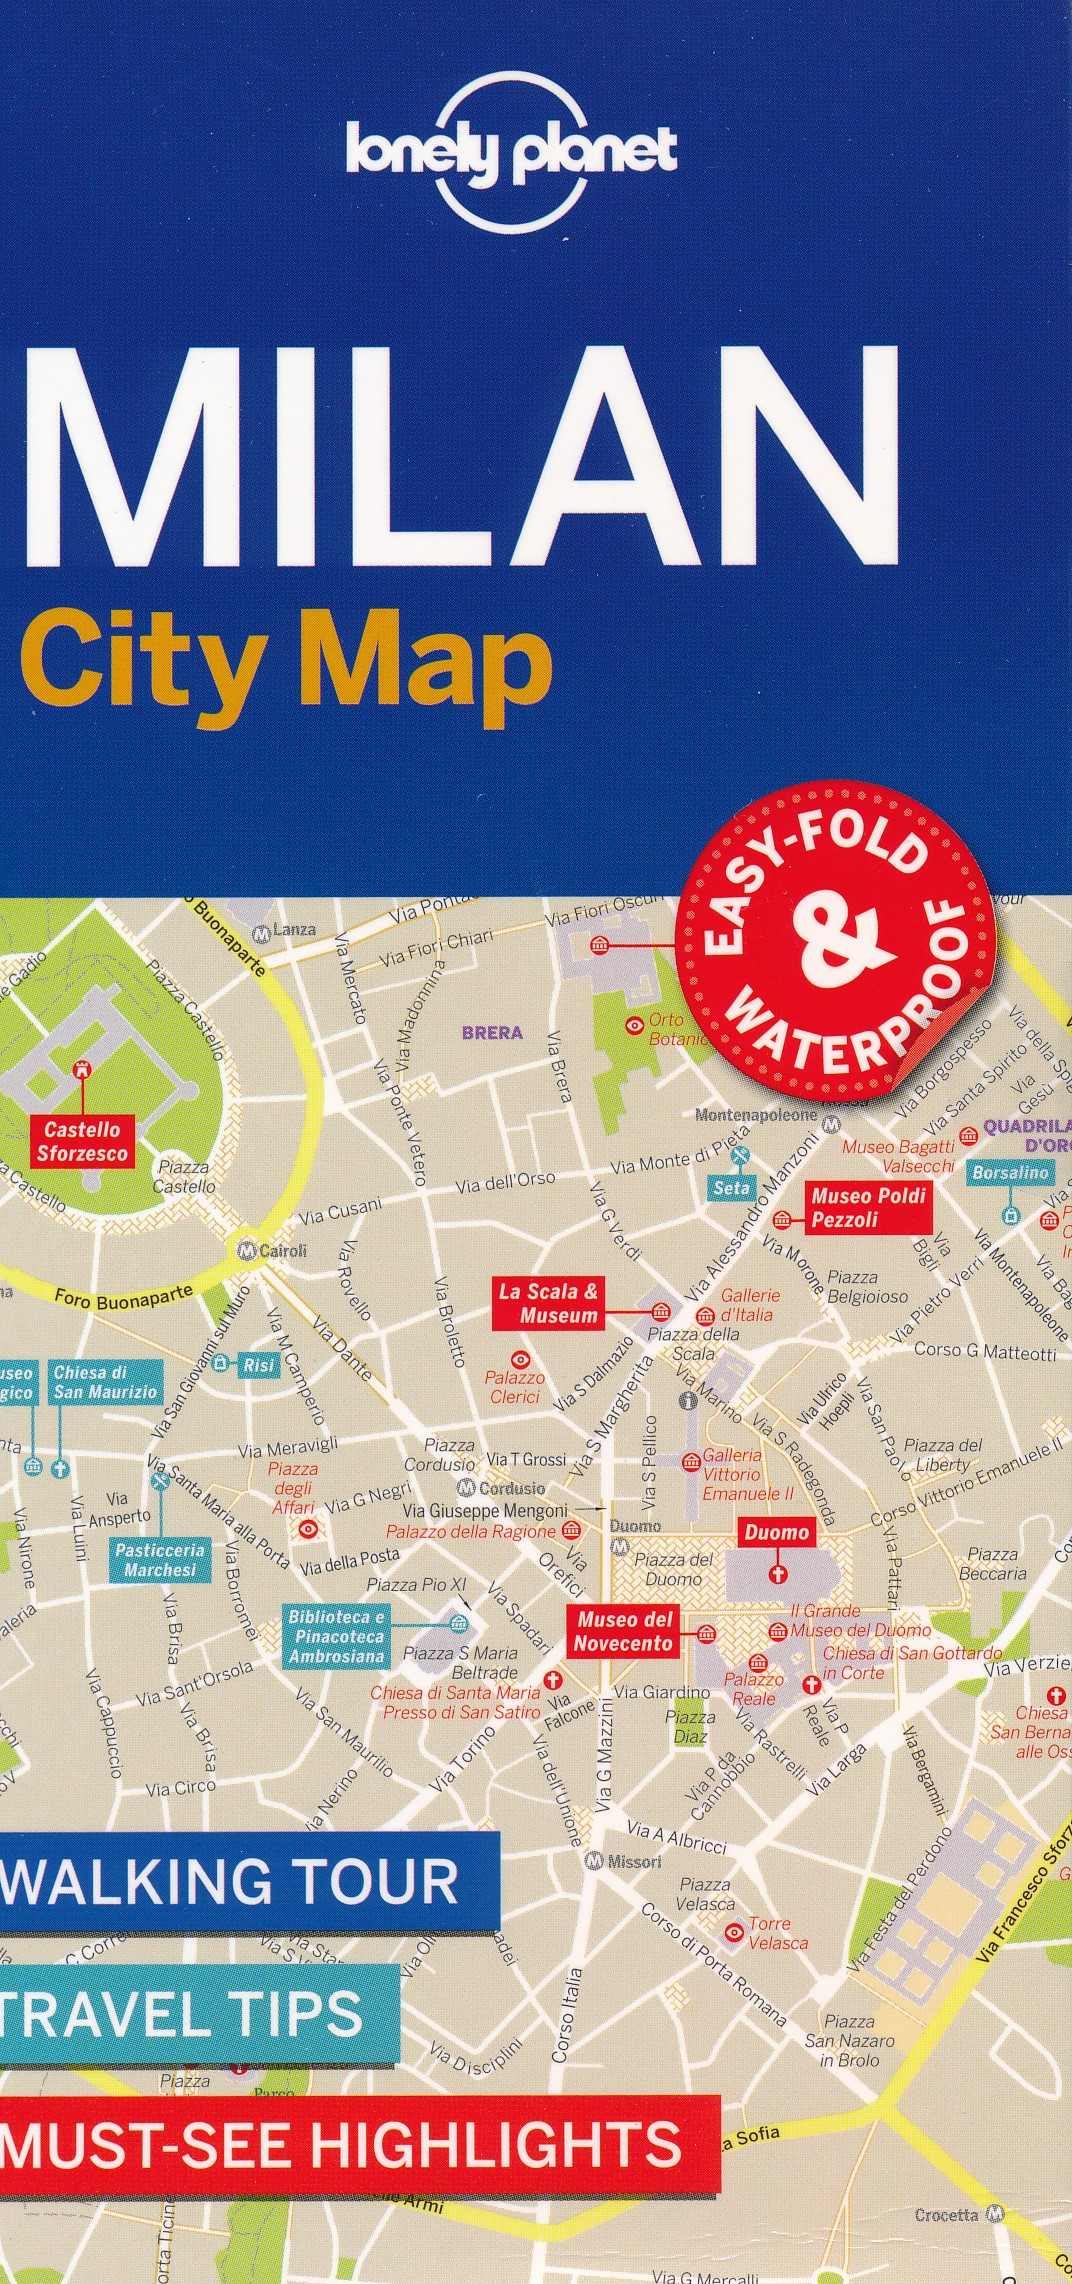 Stadsplattegrond City map Milan - Milaan | Lonely Planet